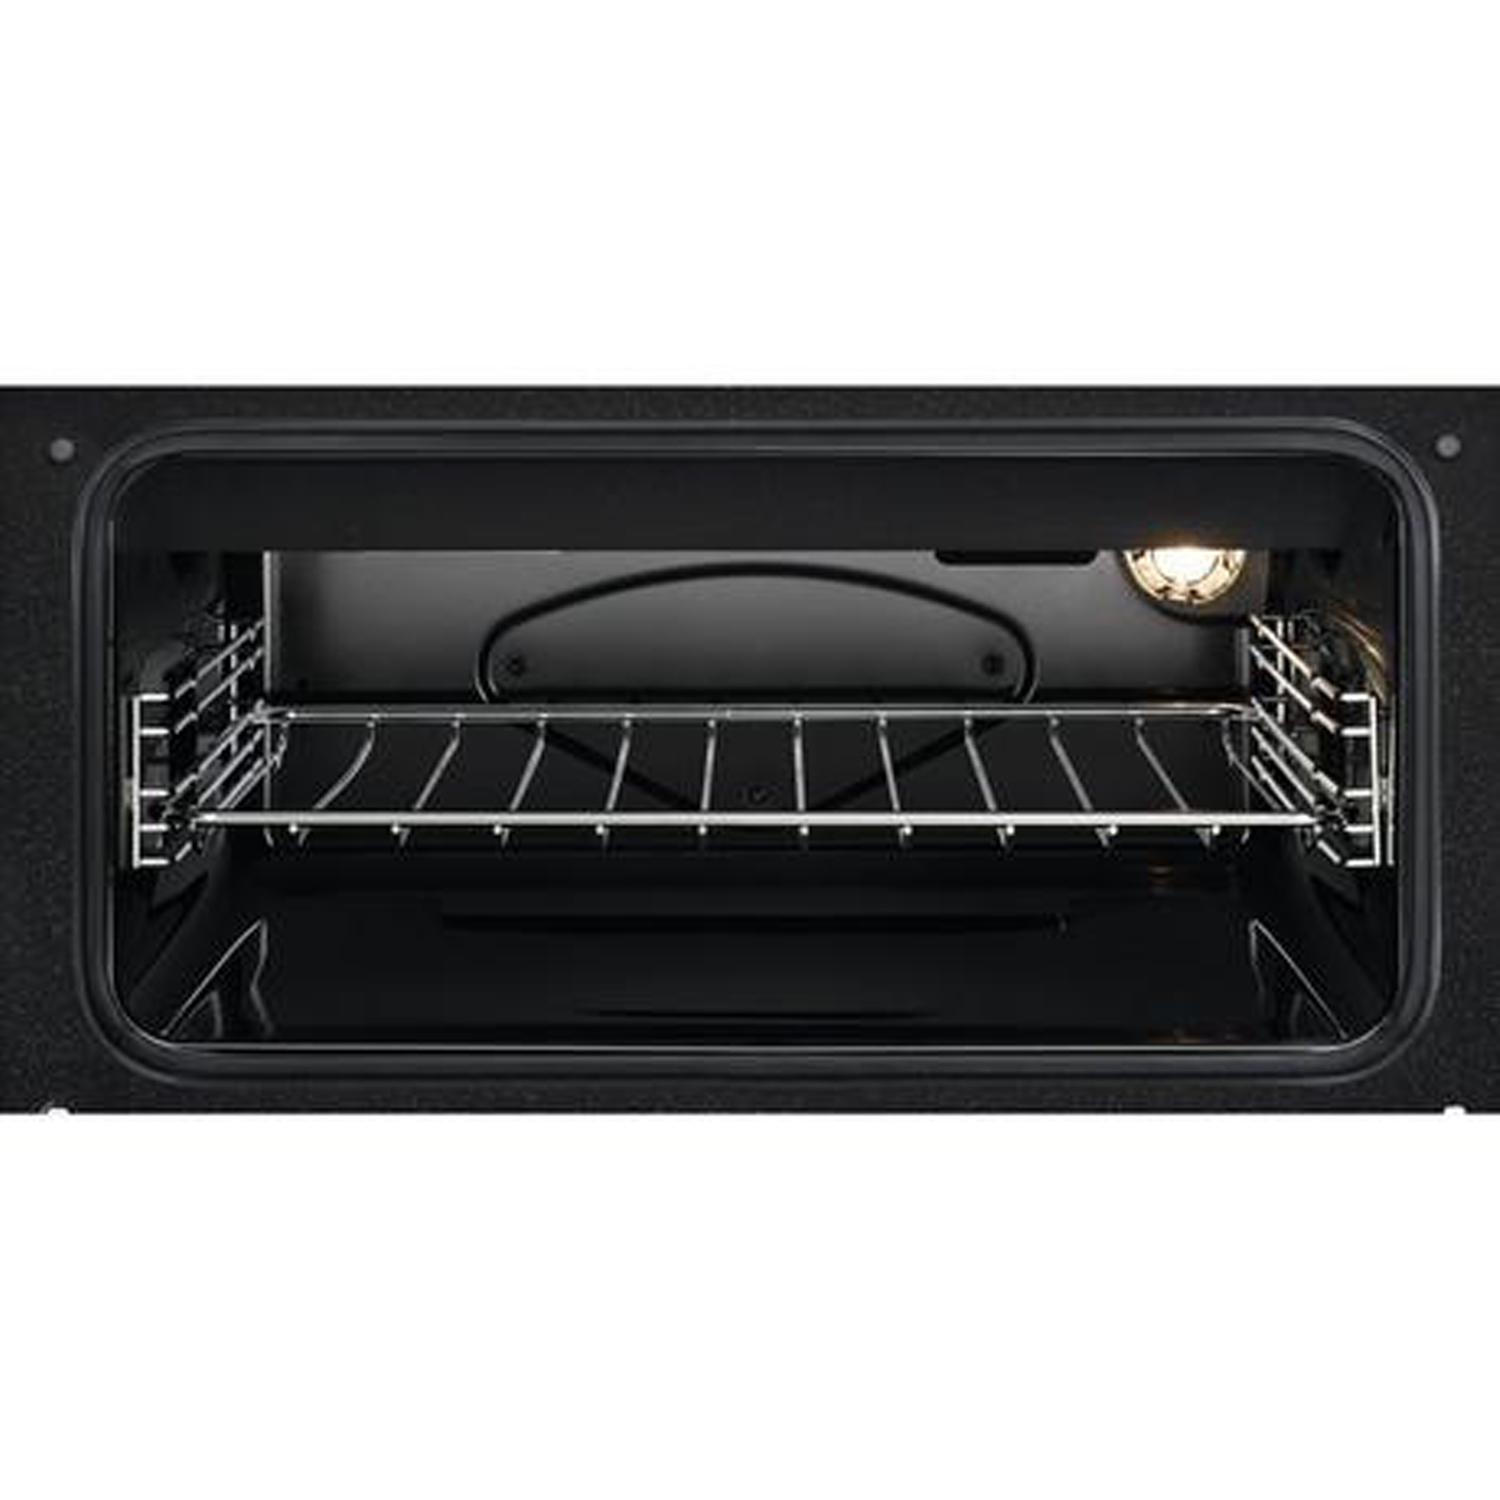 Zanussi 60cm Electric Double Oven with Ceramic Hob - White - A/A Rated - 2